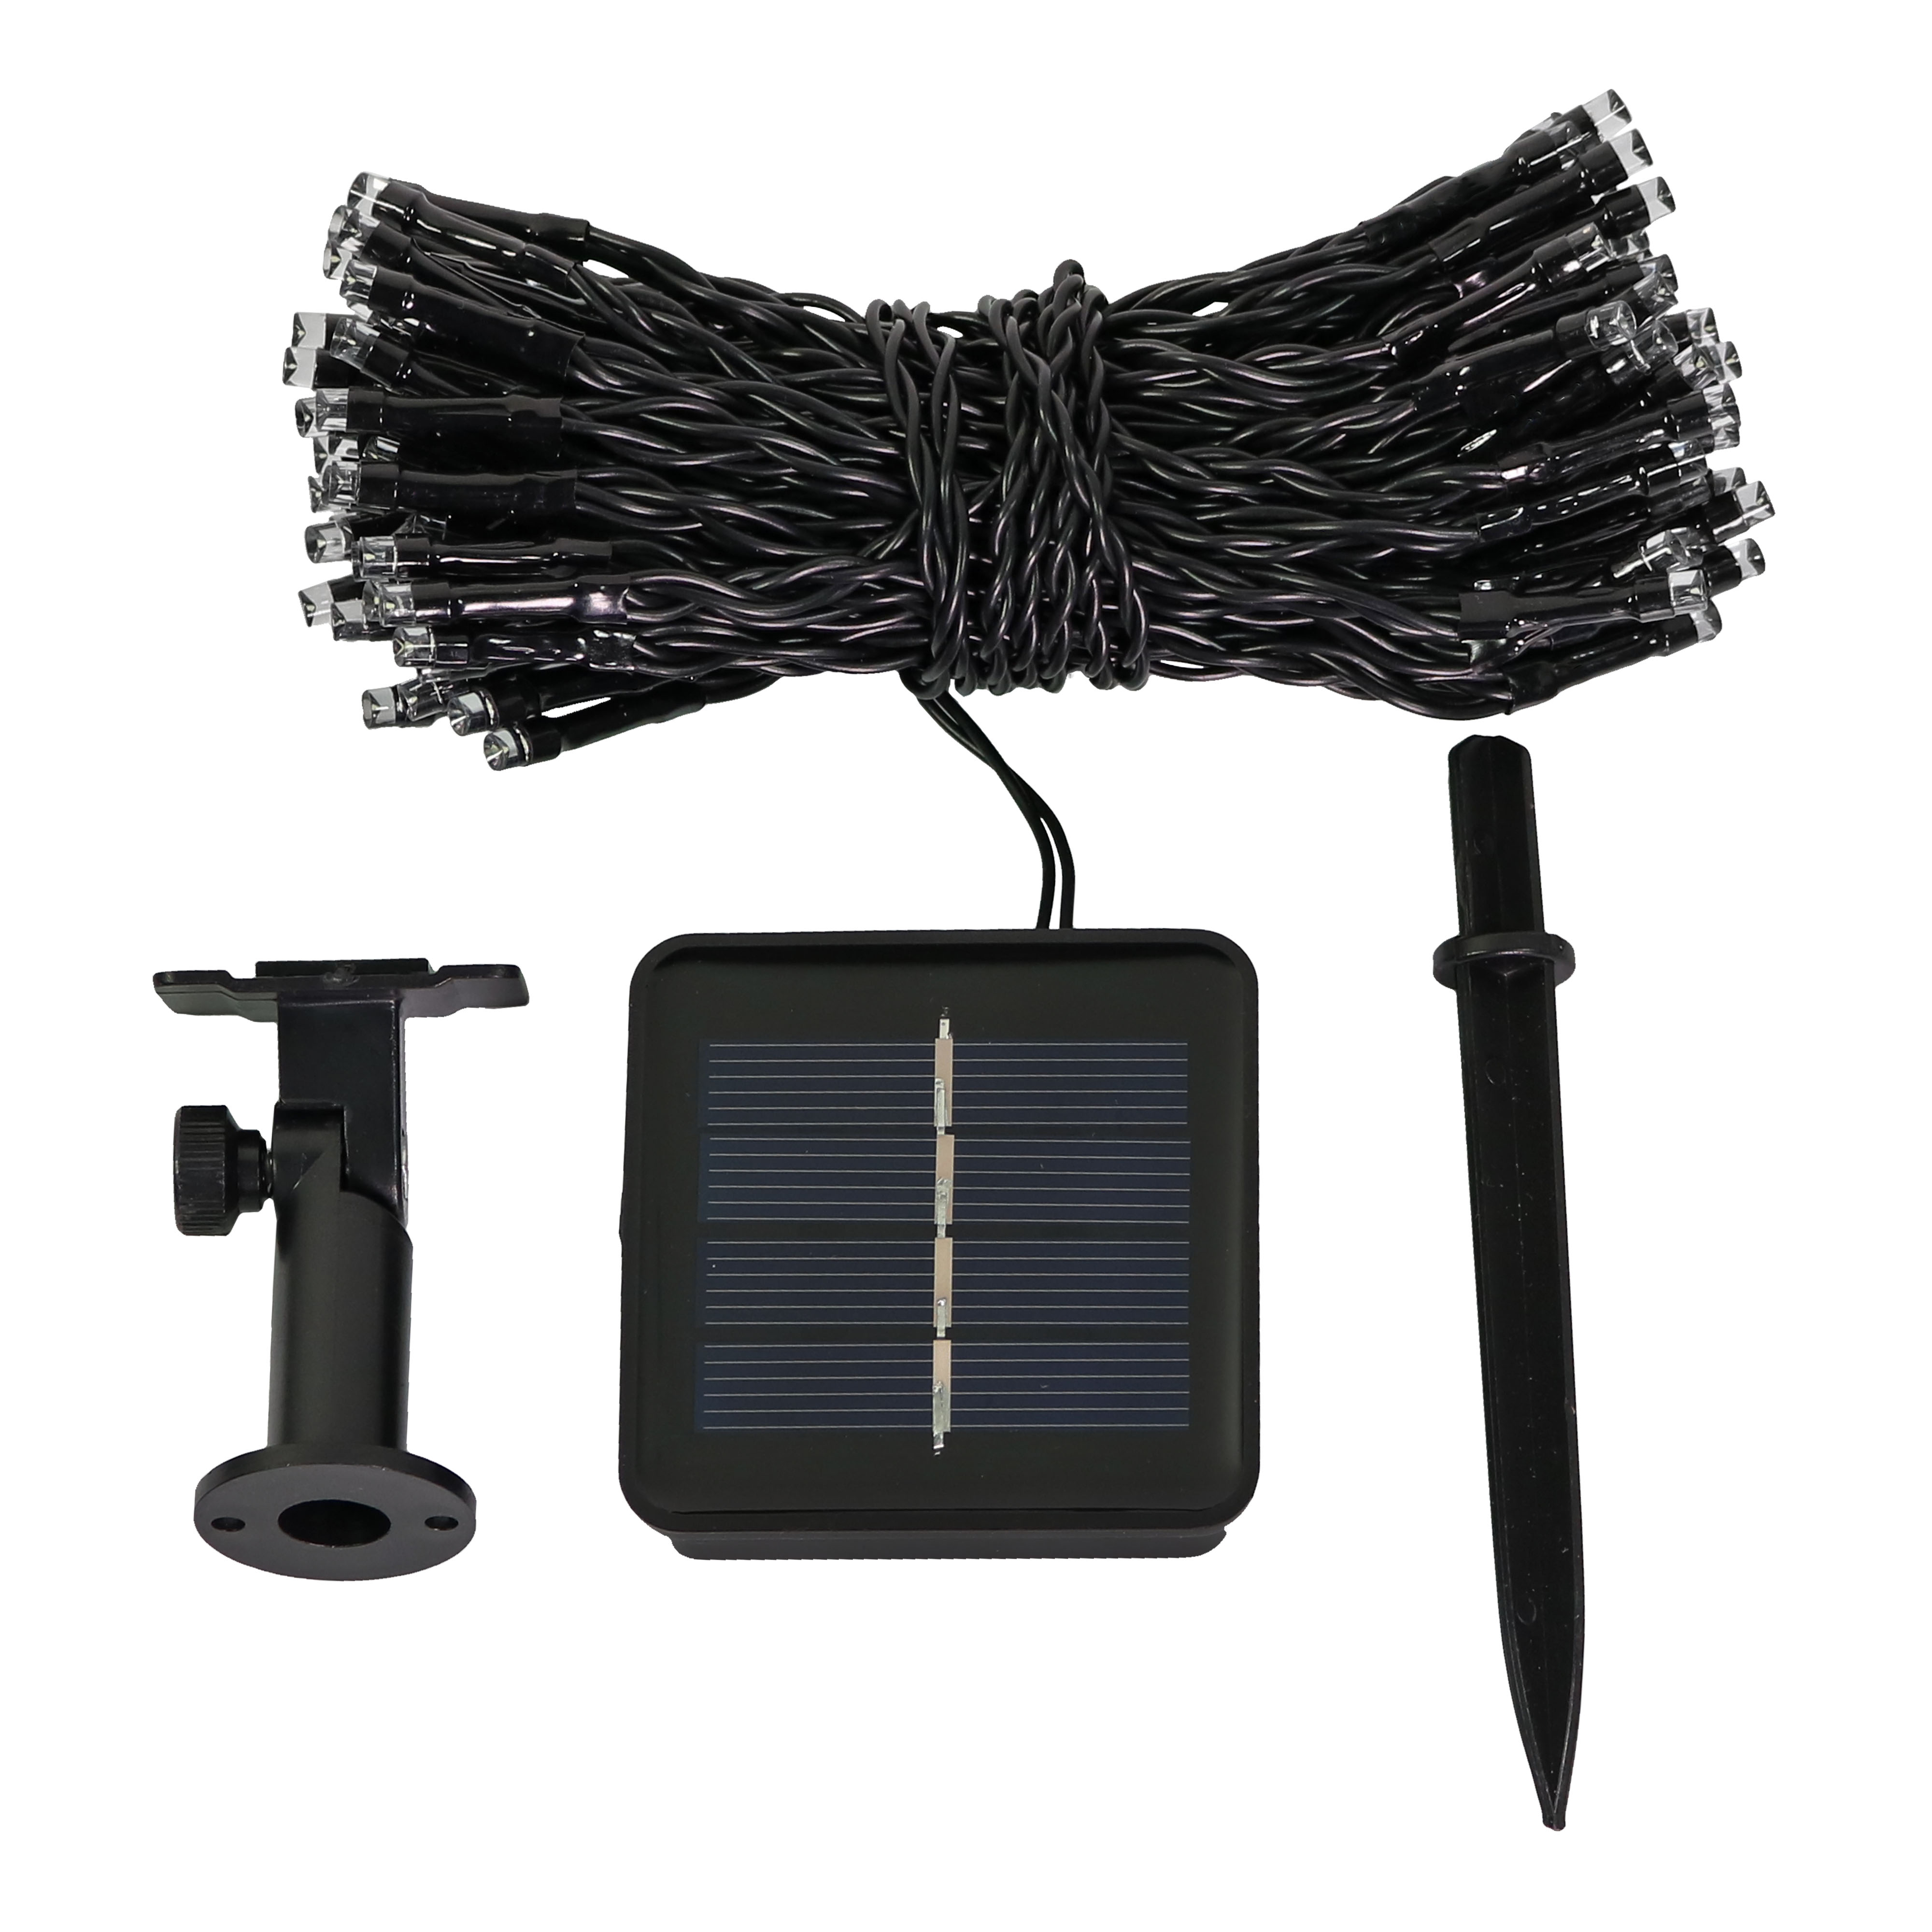 NEW-Solar Powered Garden Outdoor Patio String Lights-Multiple Options Available eBay